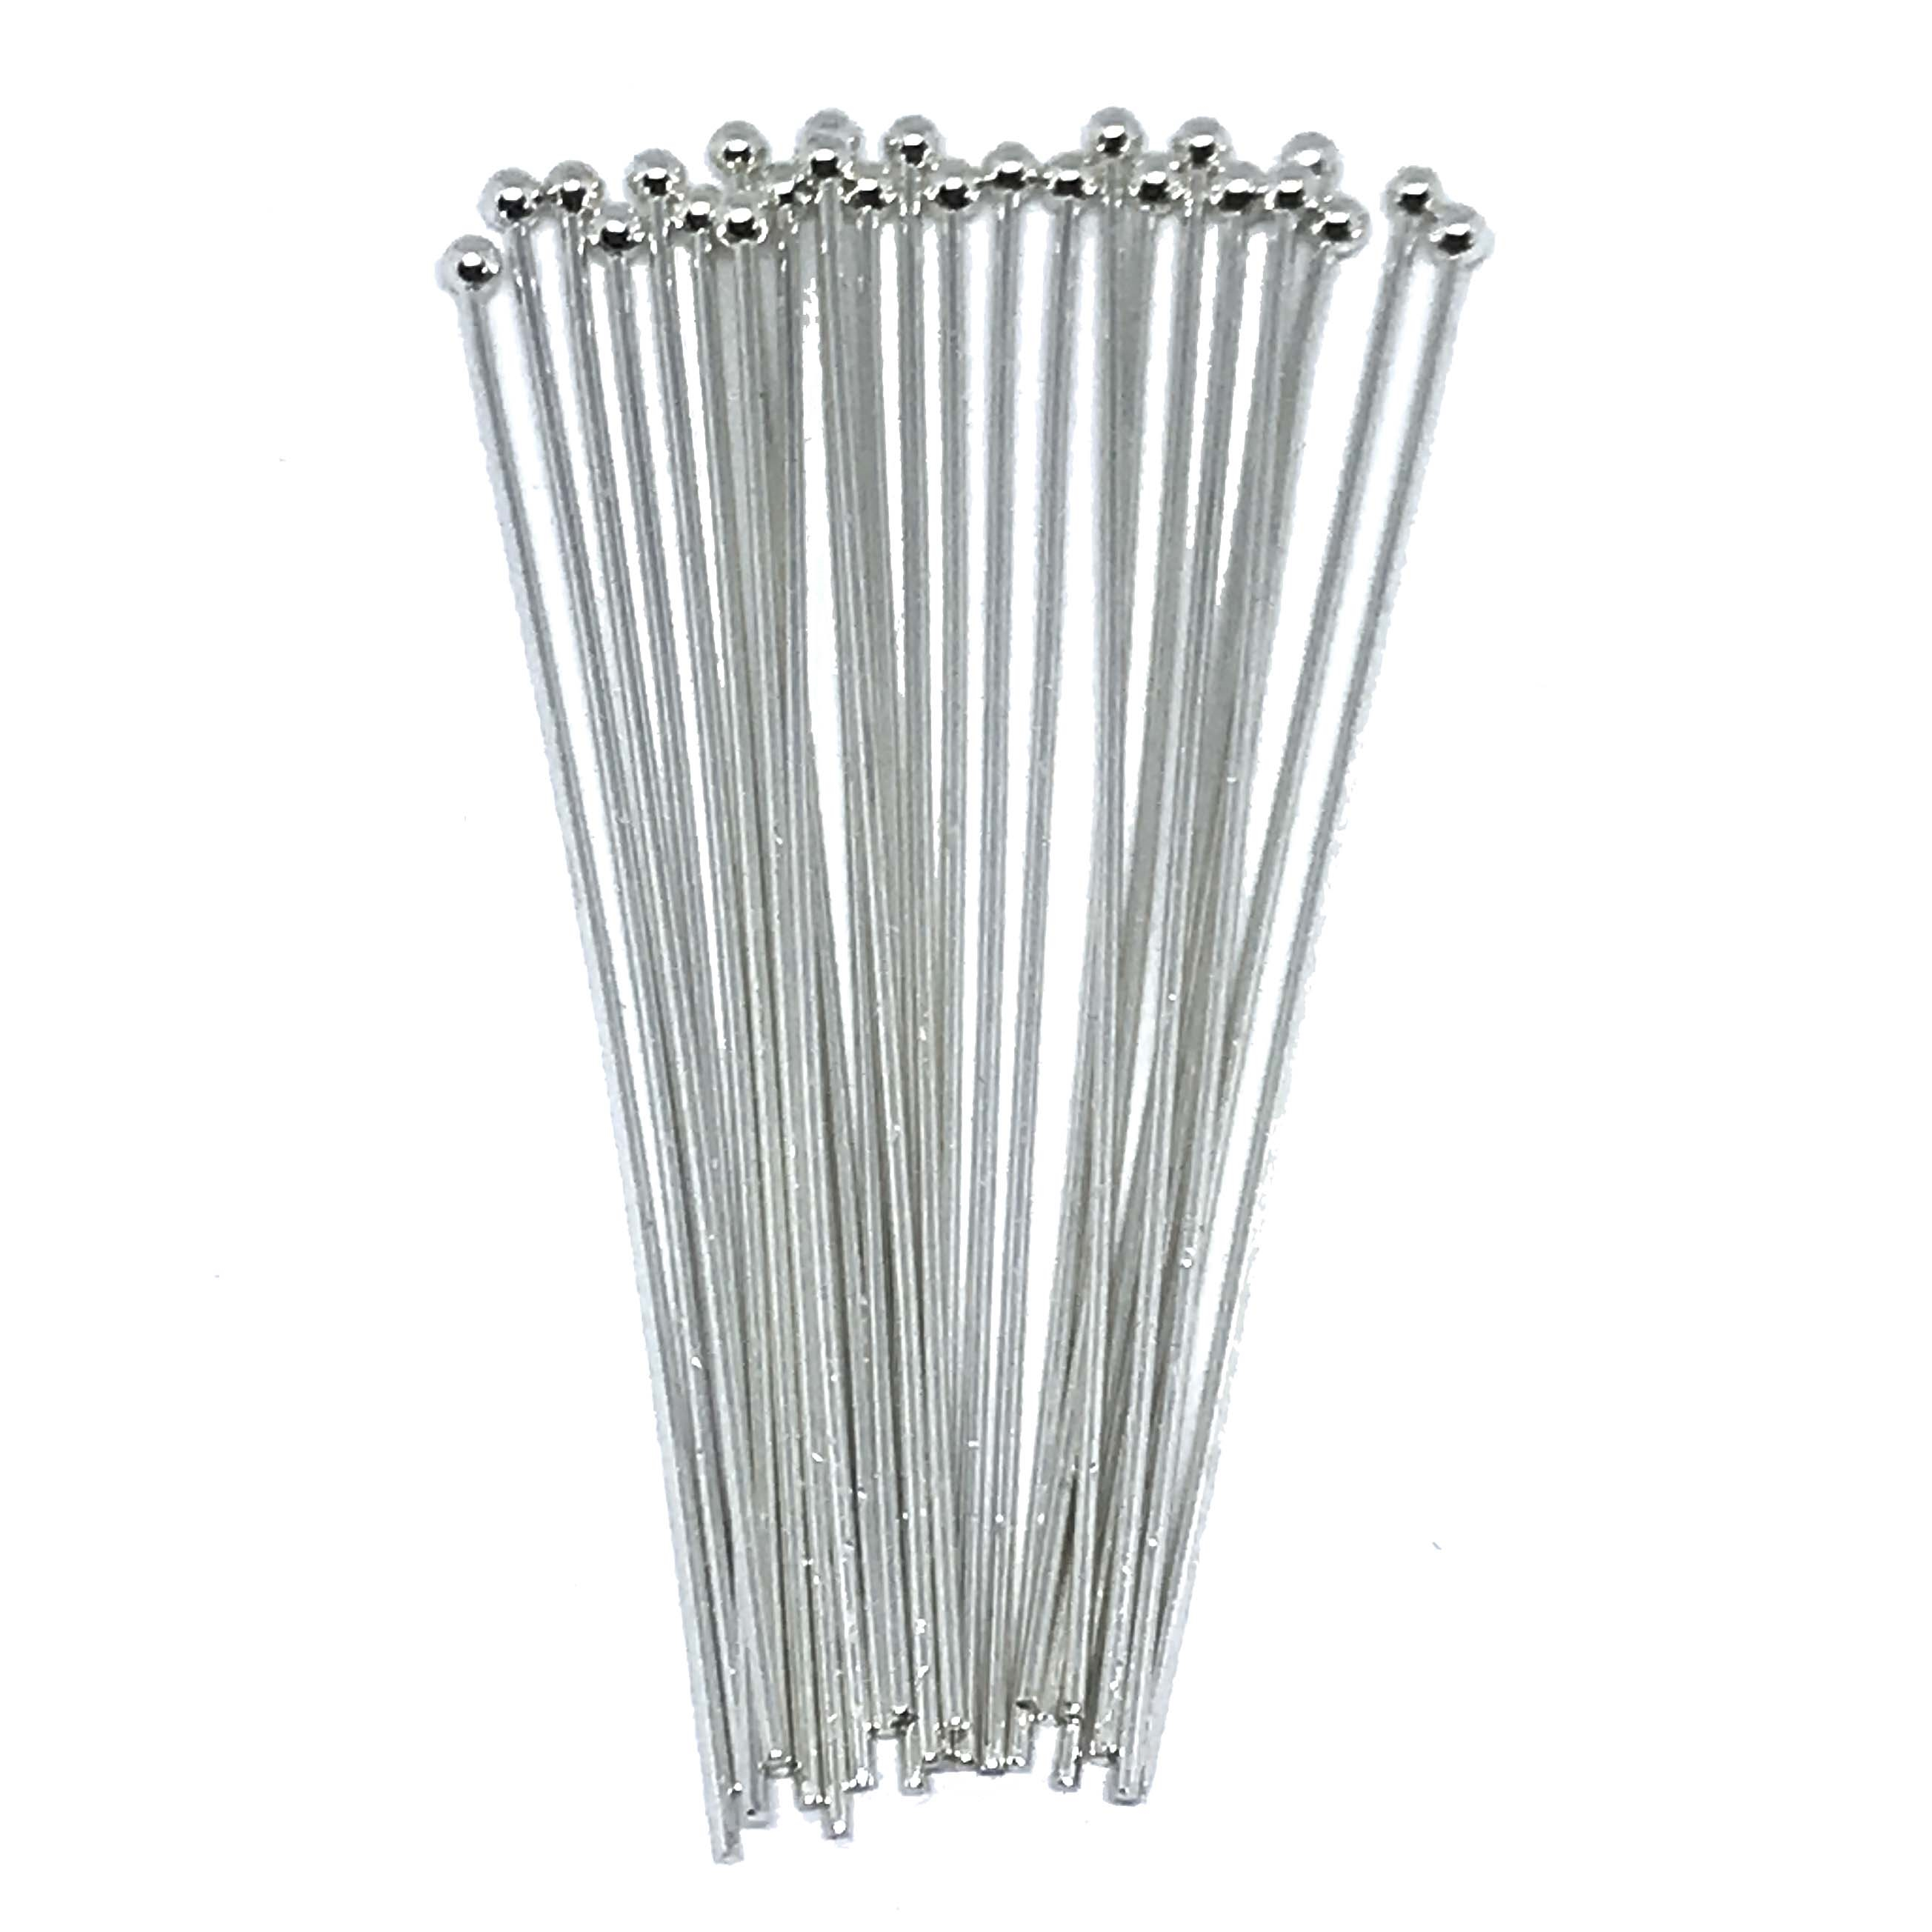 headpins, ball end head pins, jewelry making, medium weight head pins, standard size headpins, beading supplies, jewelry supplies, silverplate, bright silver, 01619